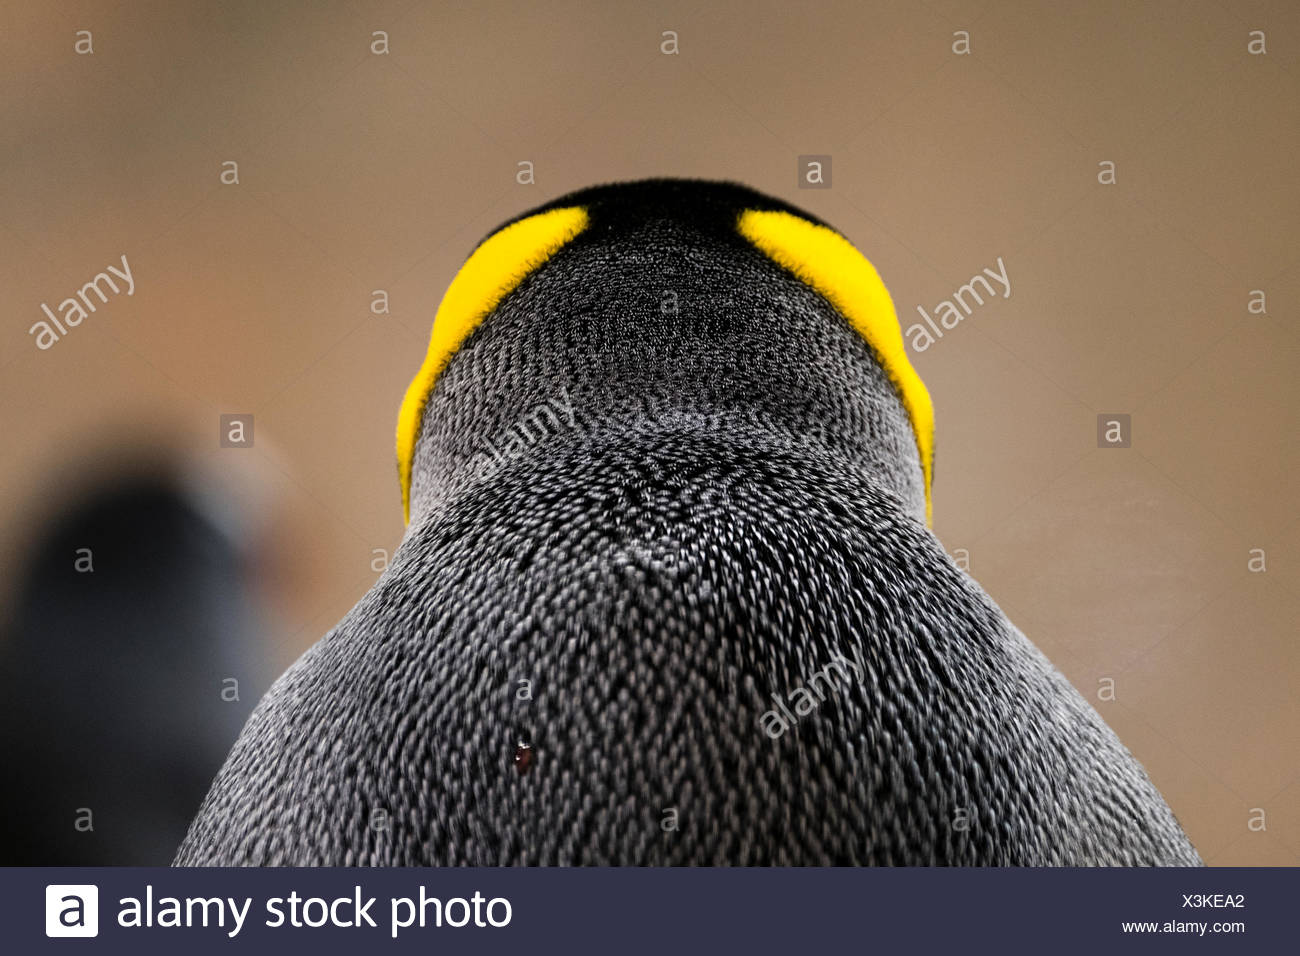 Bright yellow-orange head and neck feather plumage on a King Penguin. - Stock Image